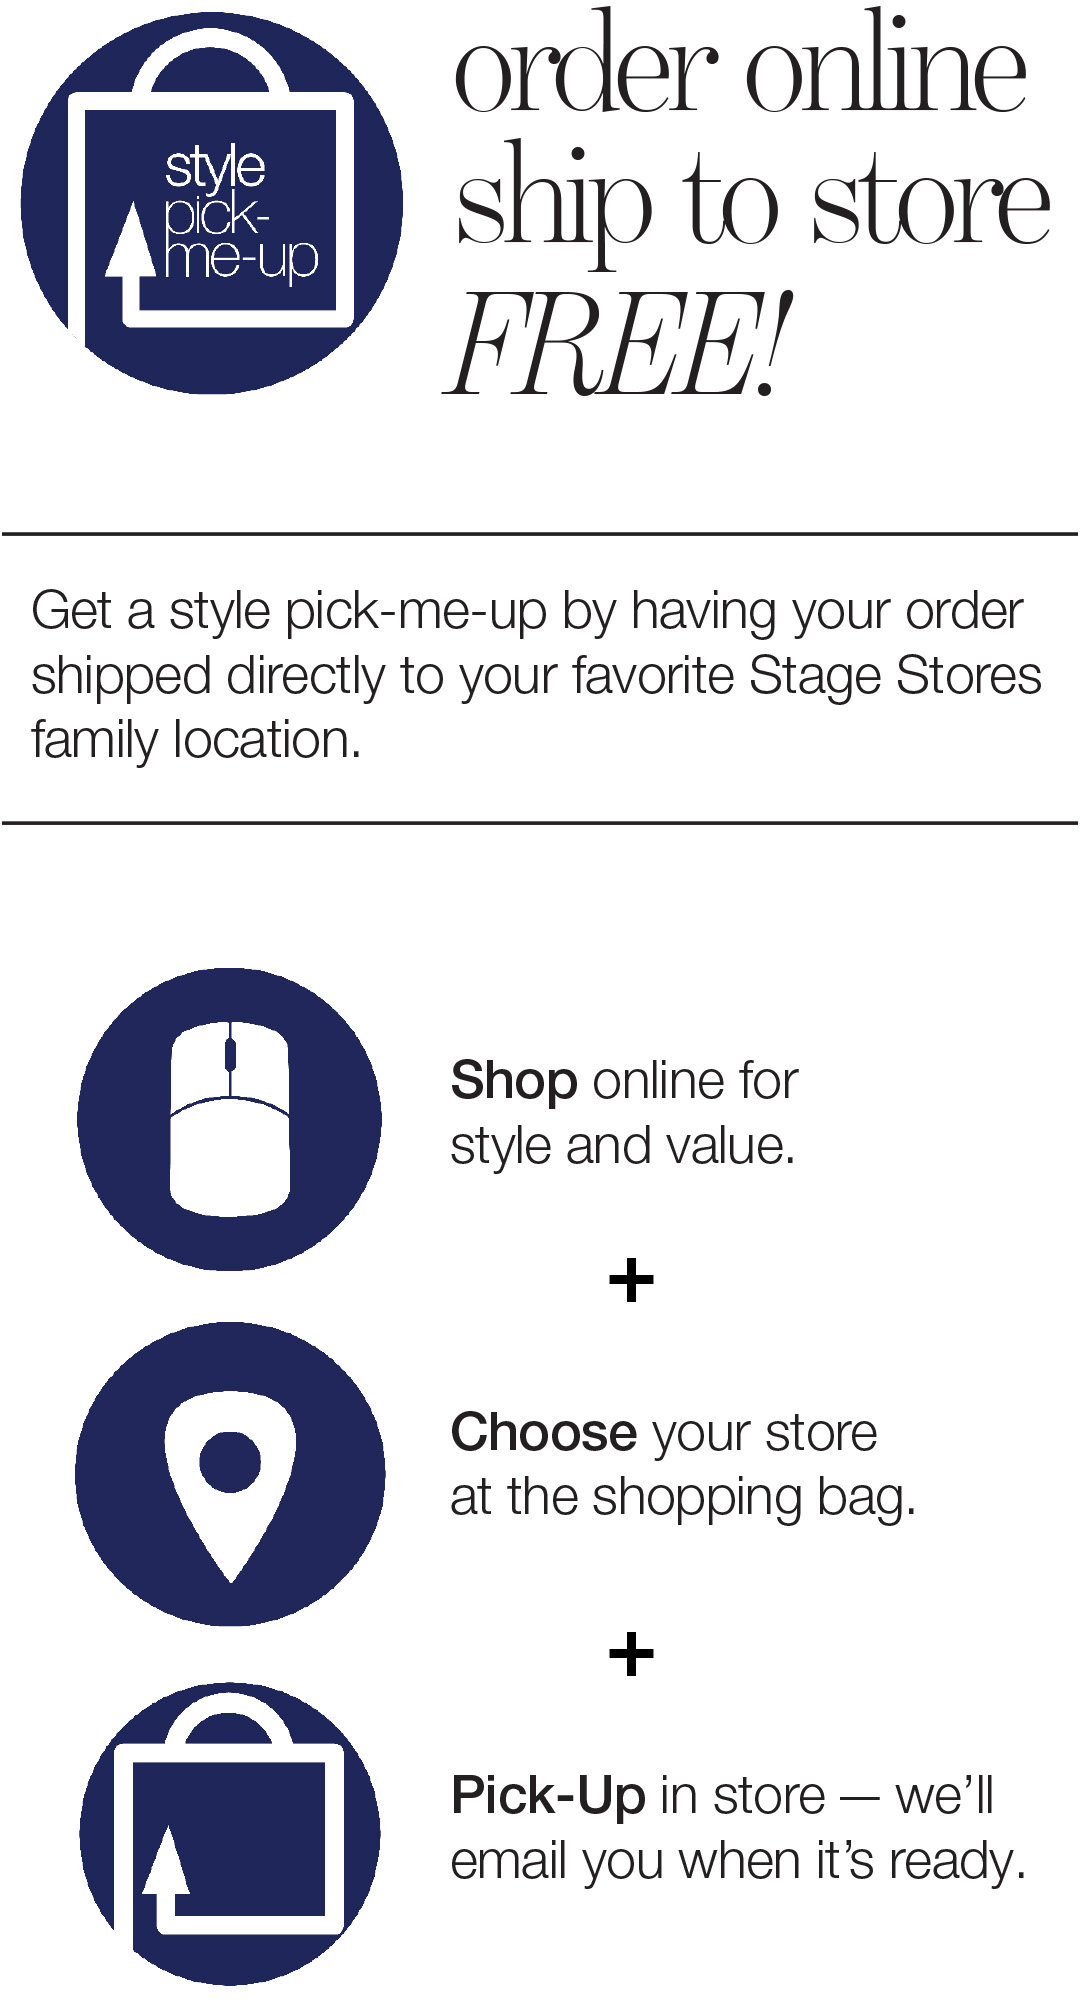 Buy Online Ship to Store